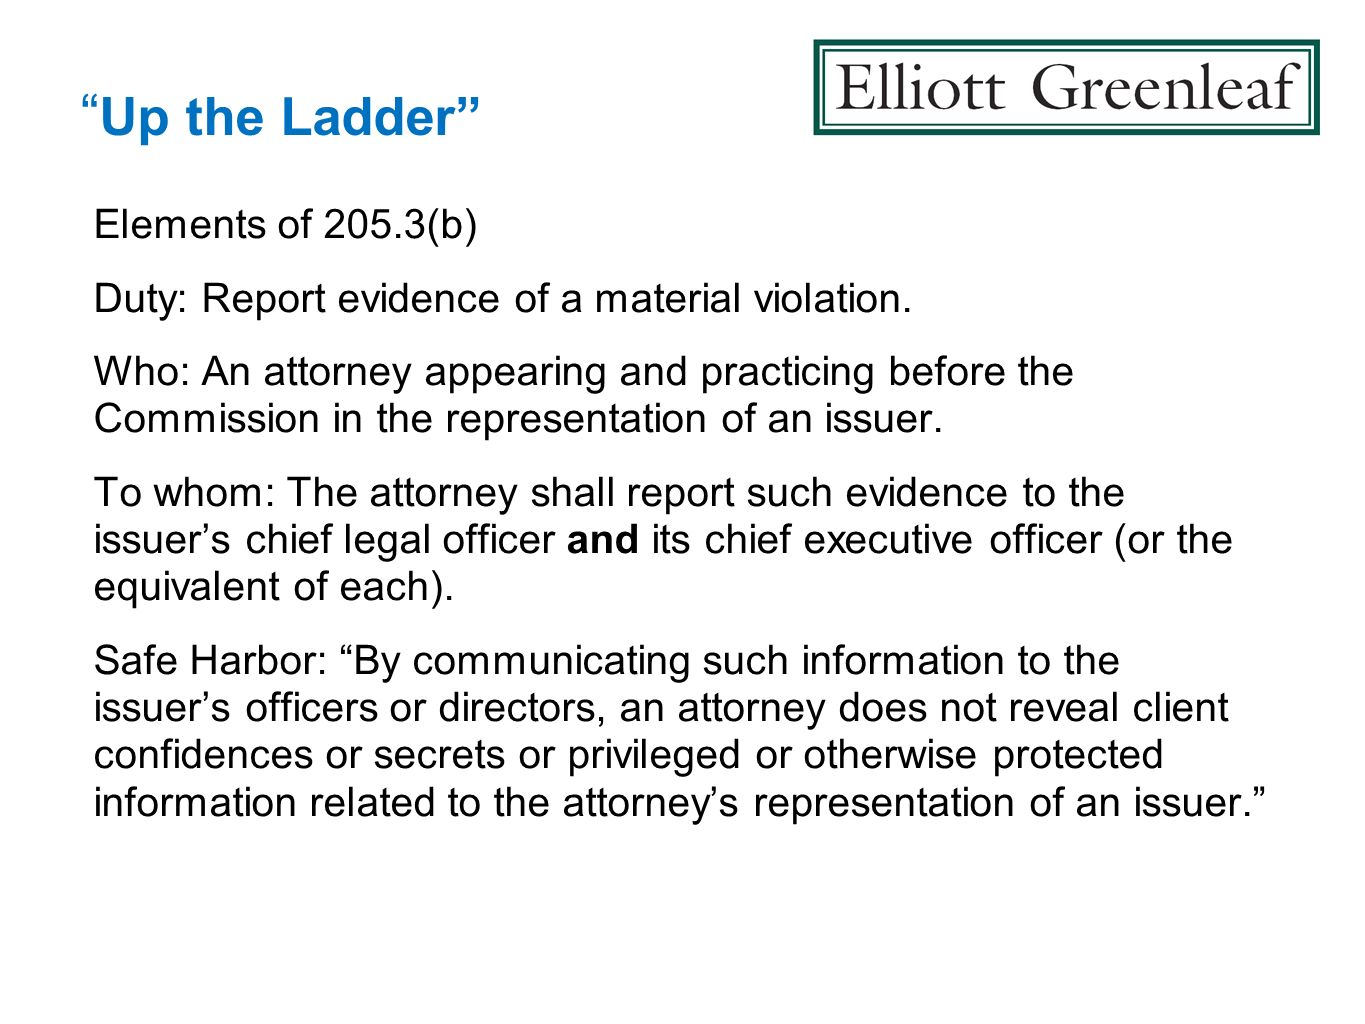 Up the Ladder Elements of 205.3(b) Duty: Report evidence of a material violation. Who: An attorney appearing and practicing before the Commission in t